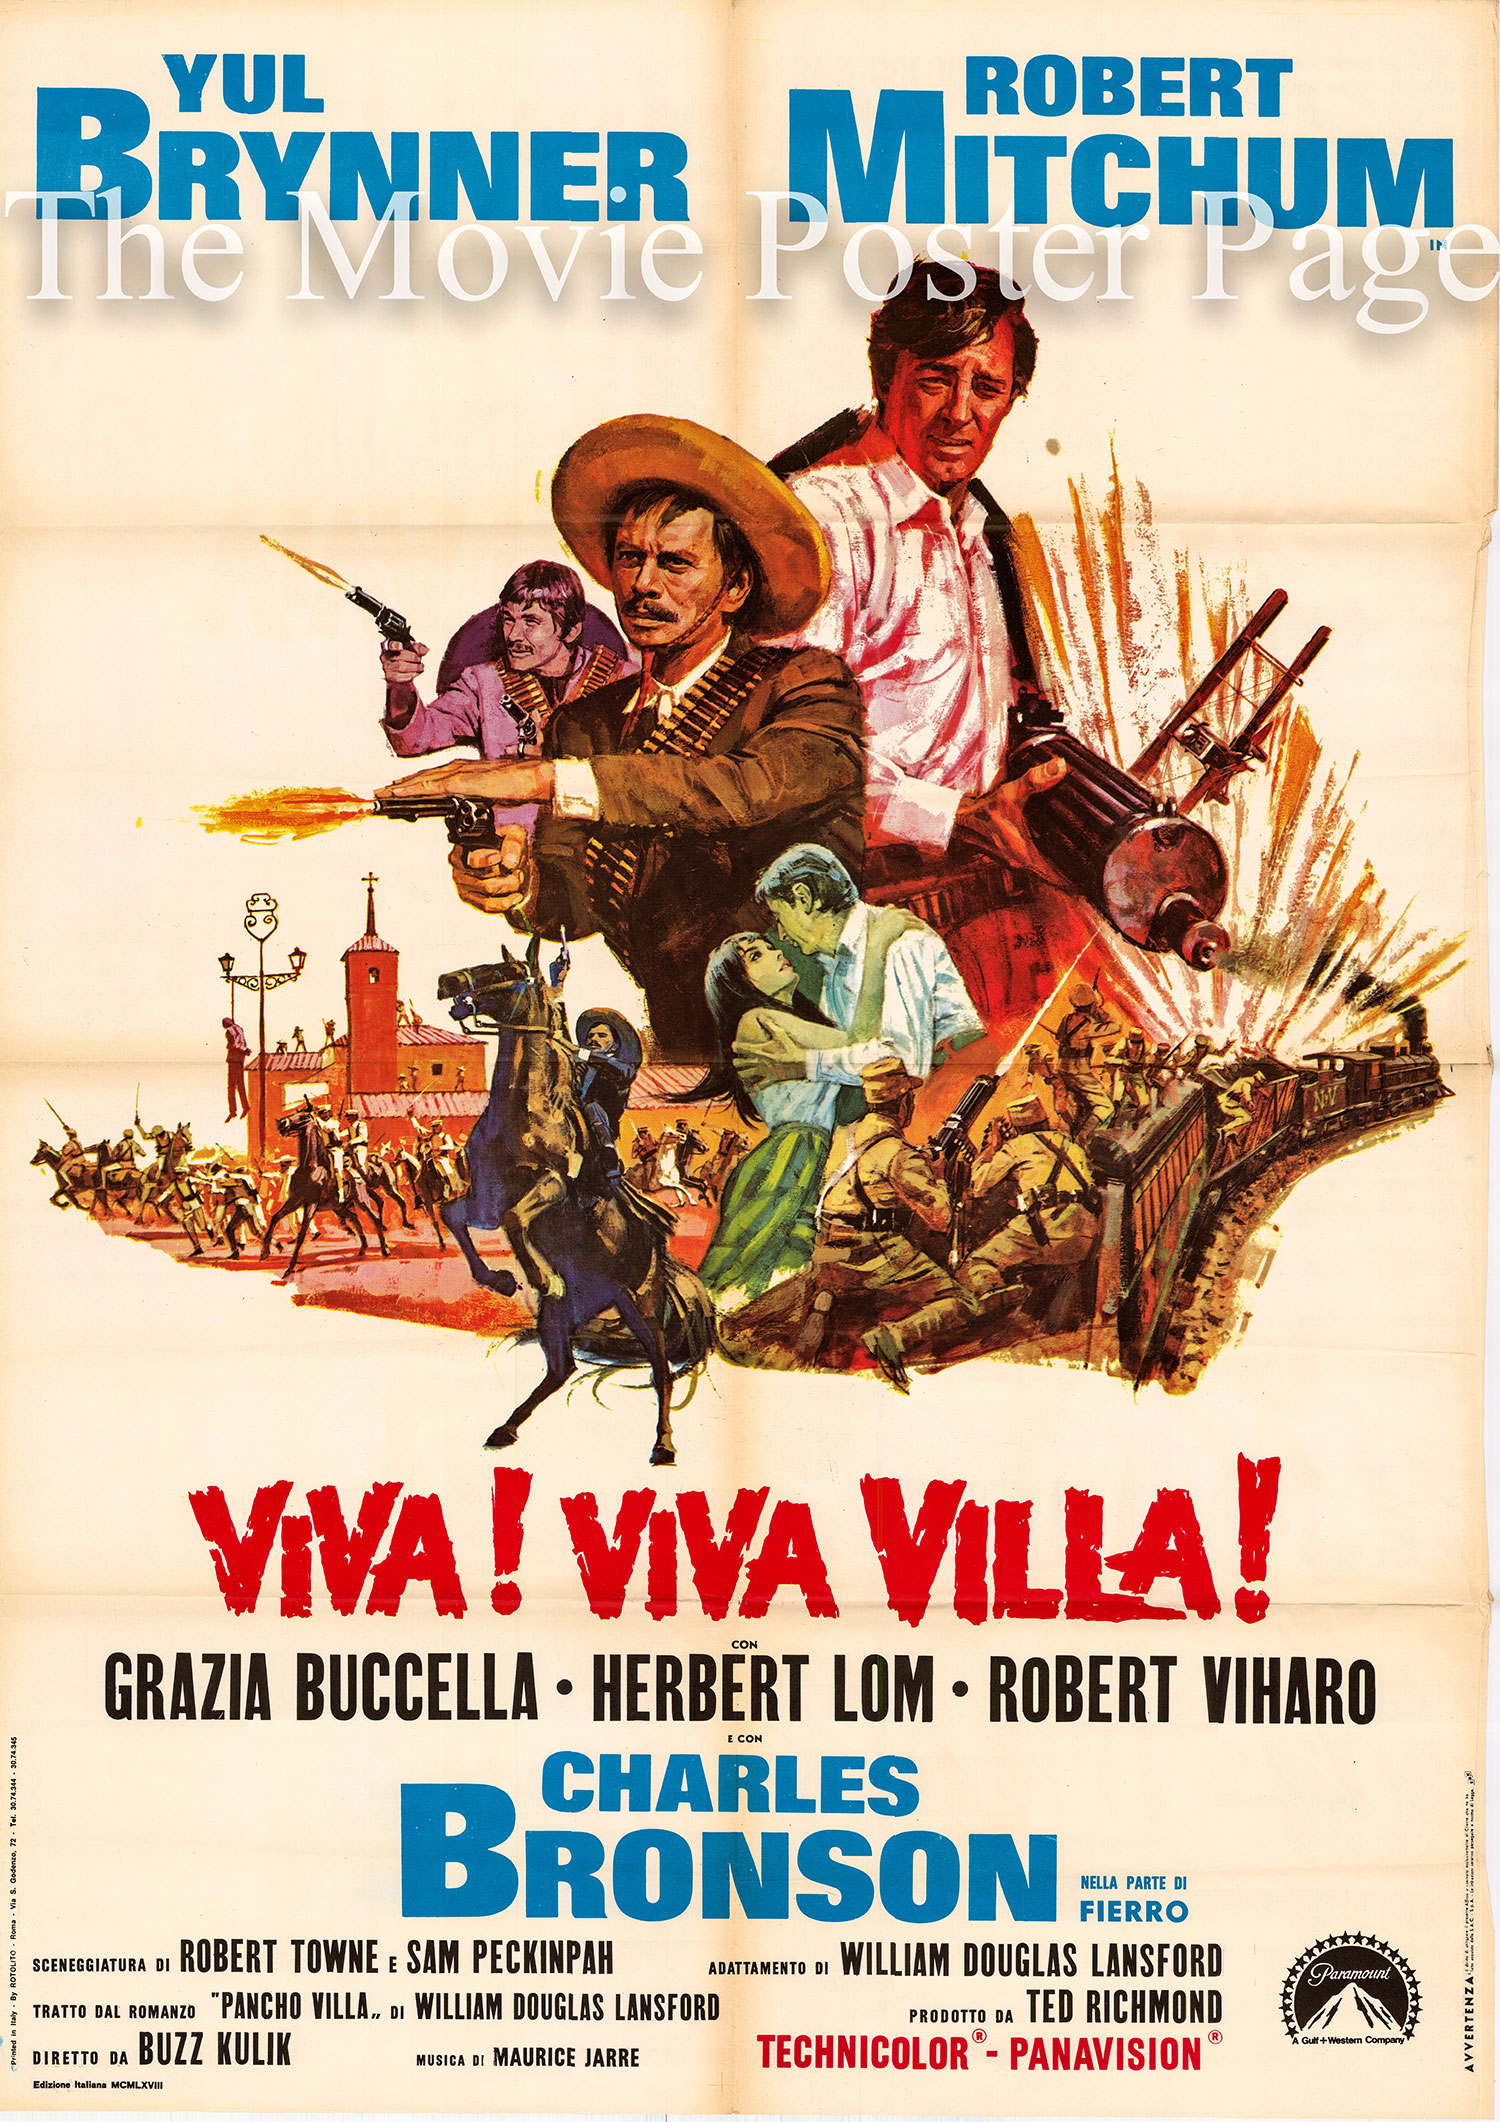 Pictured is an Italian two-sheet poster made to promote the 1968 Buzz Kulik film <i>Villa Rides</i> starring Yul Brynner as Pancho Villa.